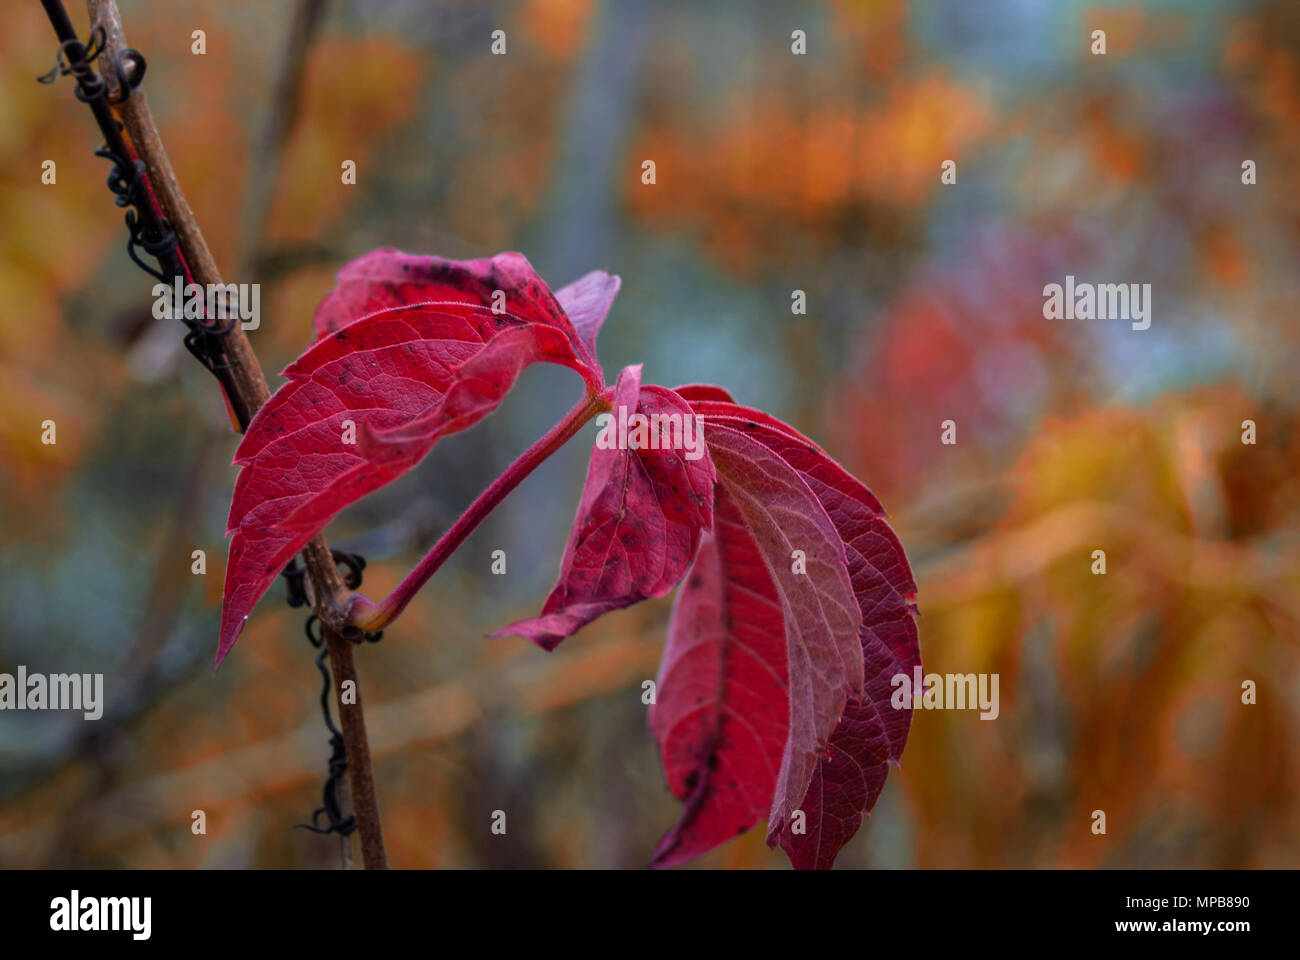 The Last Living Red Maple Leaves in November in Upstate New York - Stock Image